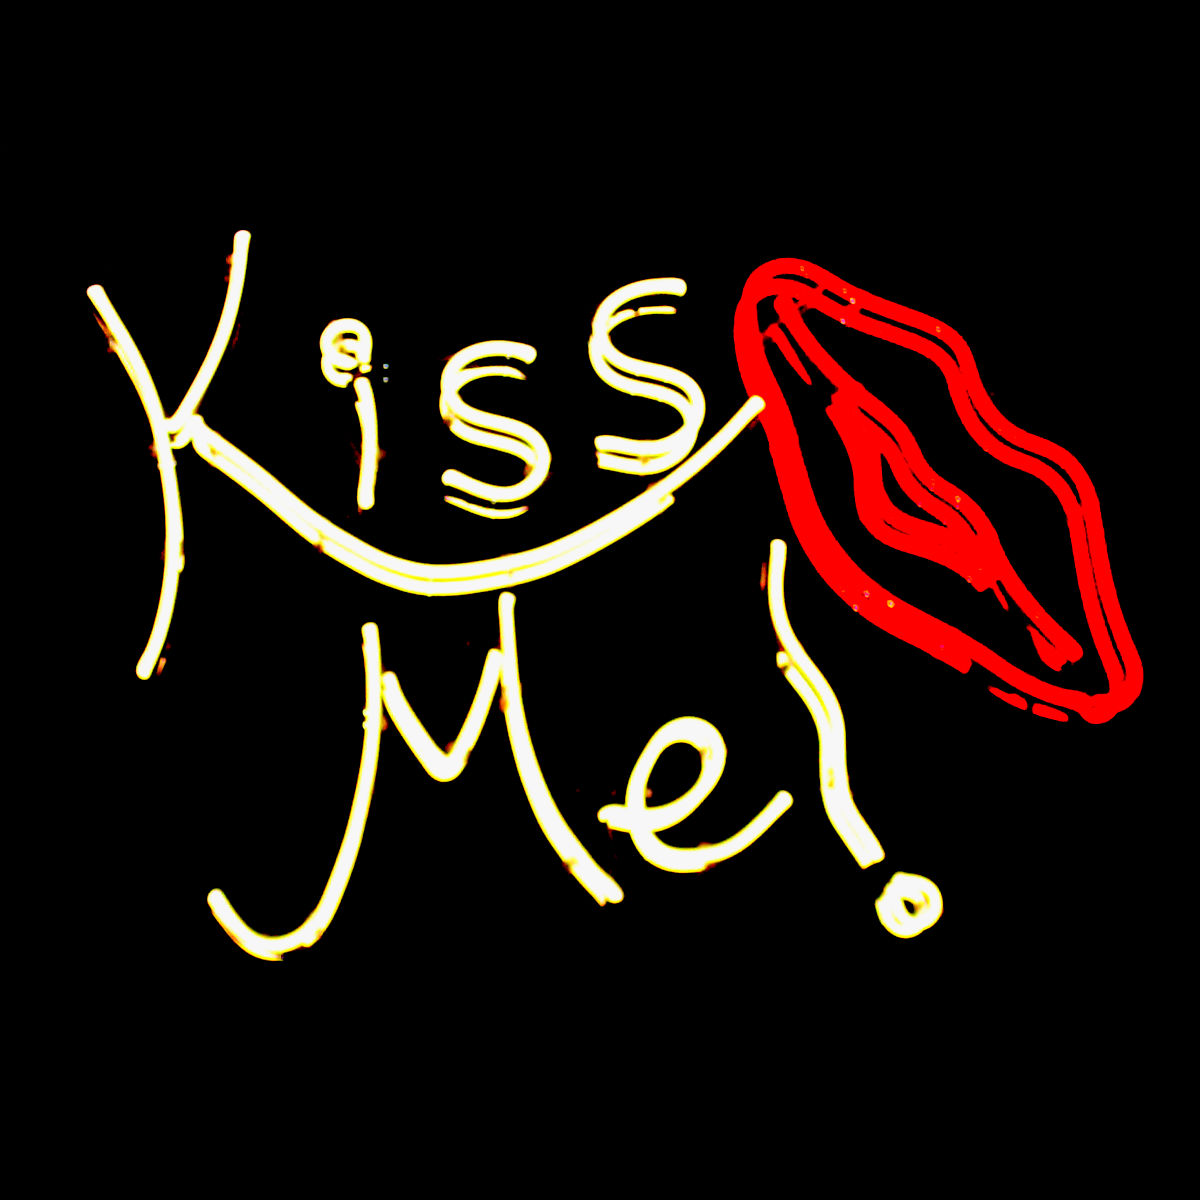 """KISS ME!"" Modern Designer Stained Italian Glass Mirrored Neon Light Sculpture - John Barton - BartonNeonMagic.com"